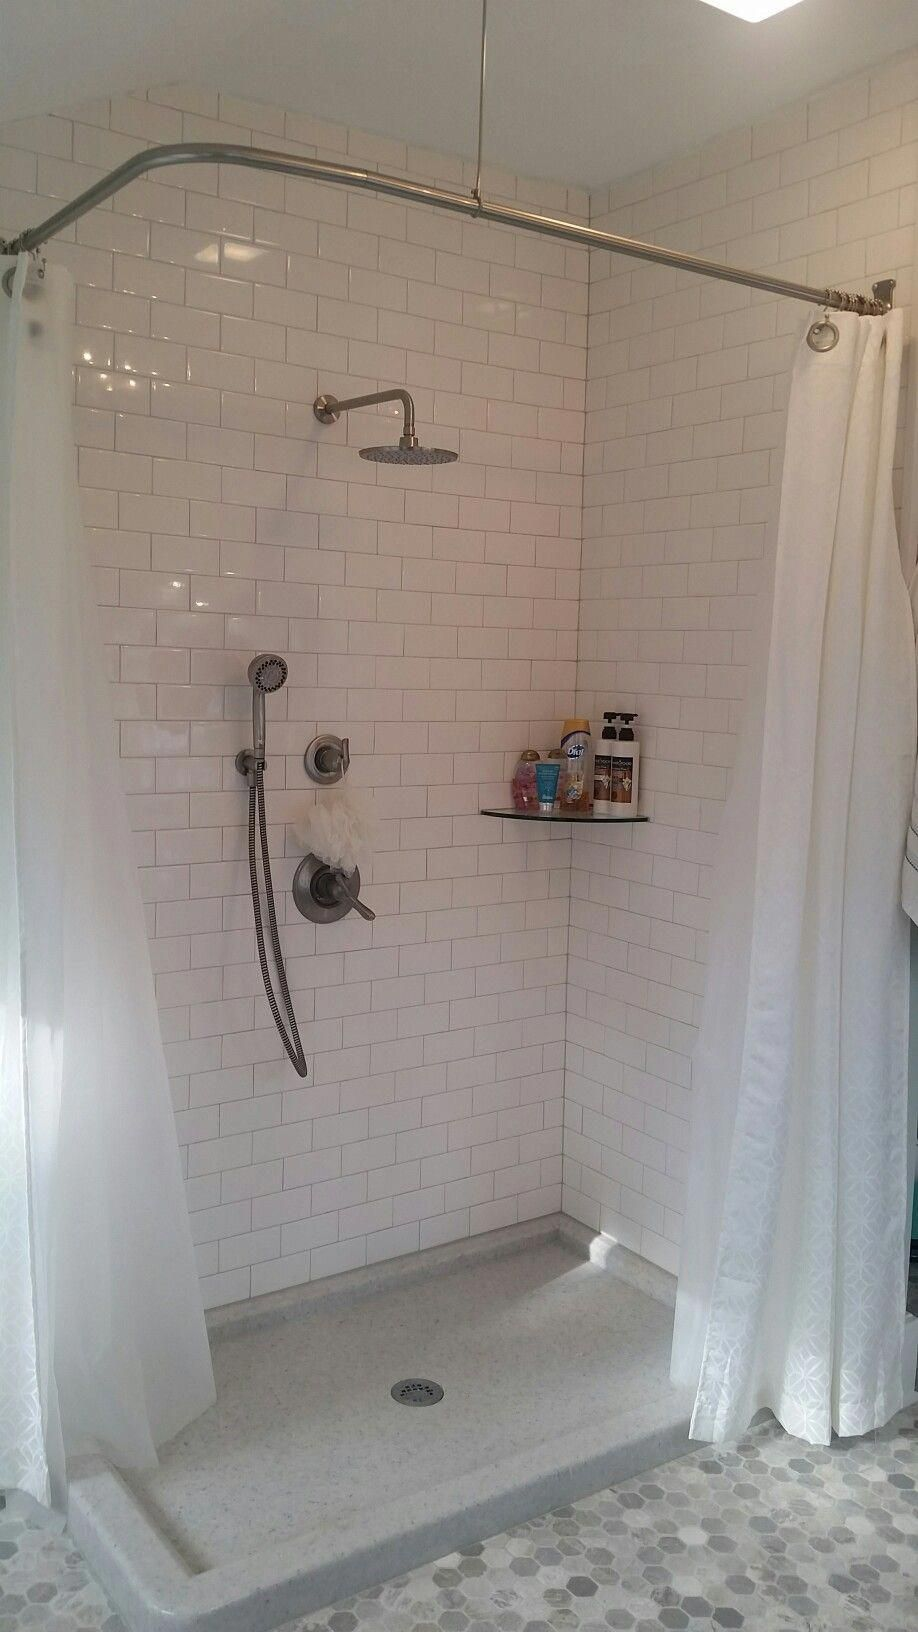 Blazing Delegated Bathroom Remodel On A Budget Check Out The Post